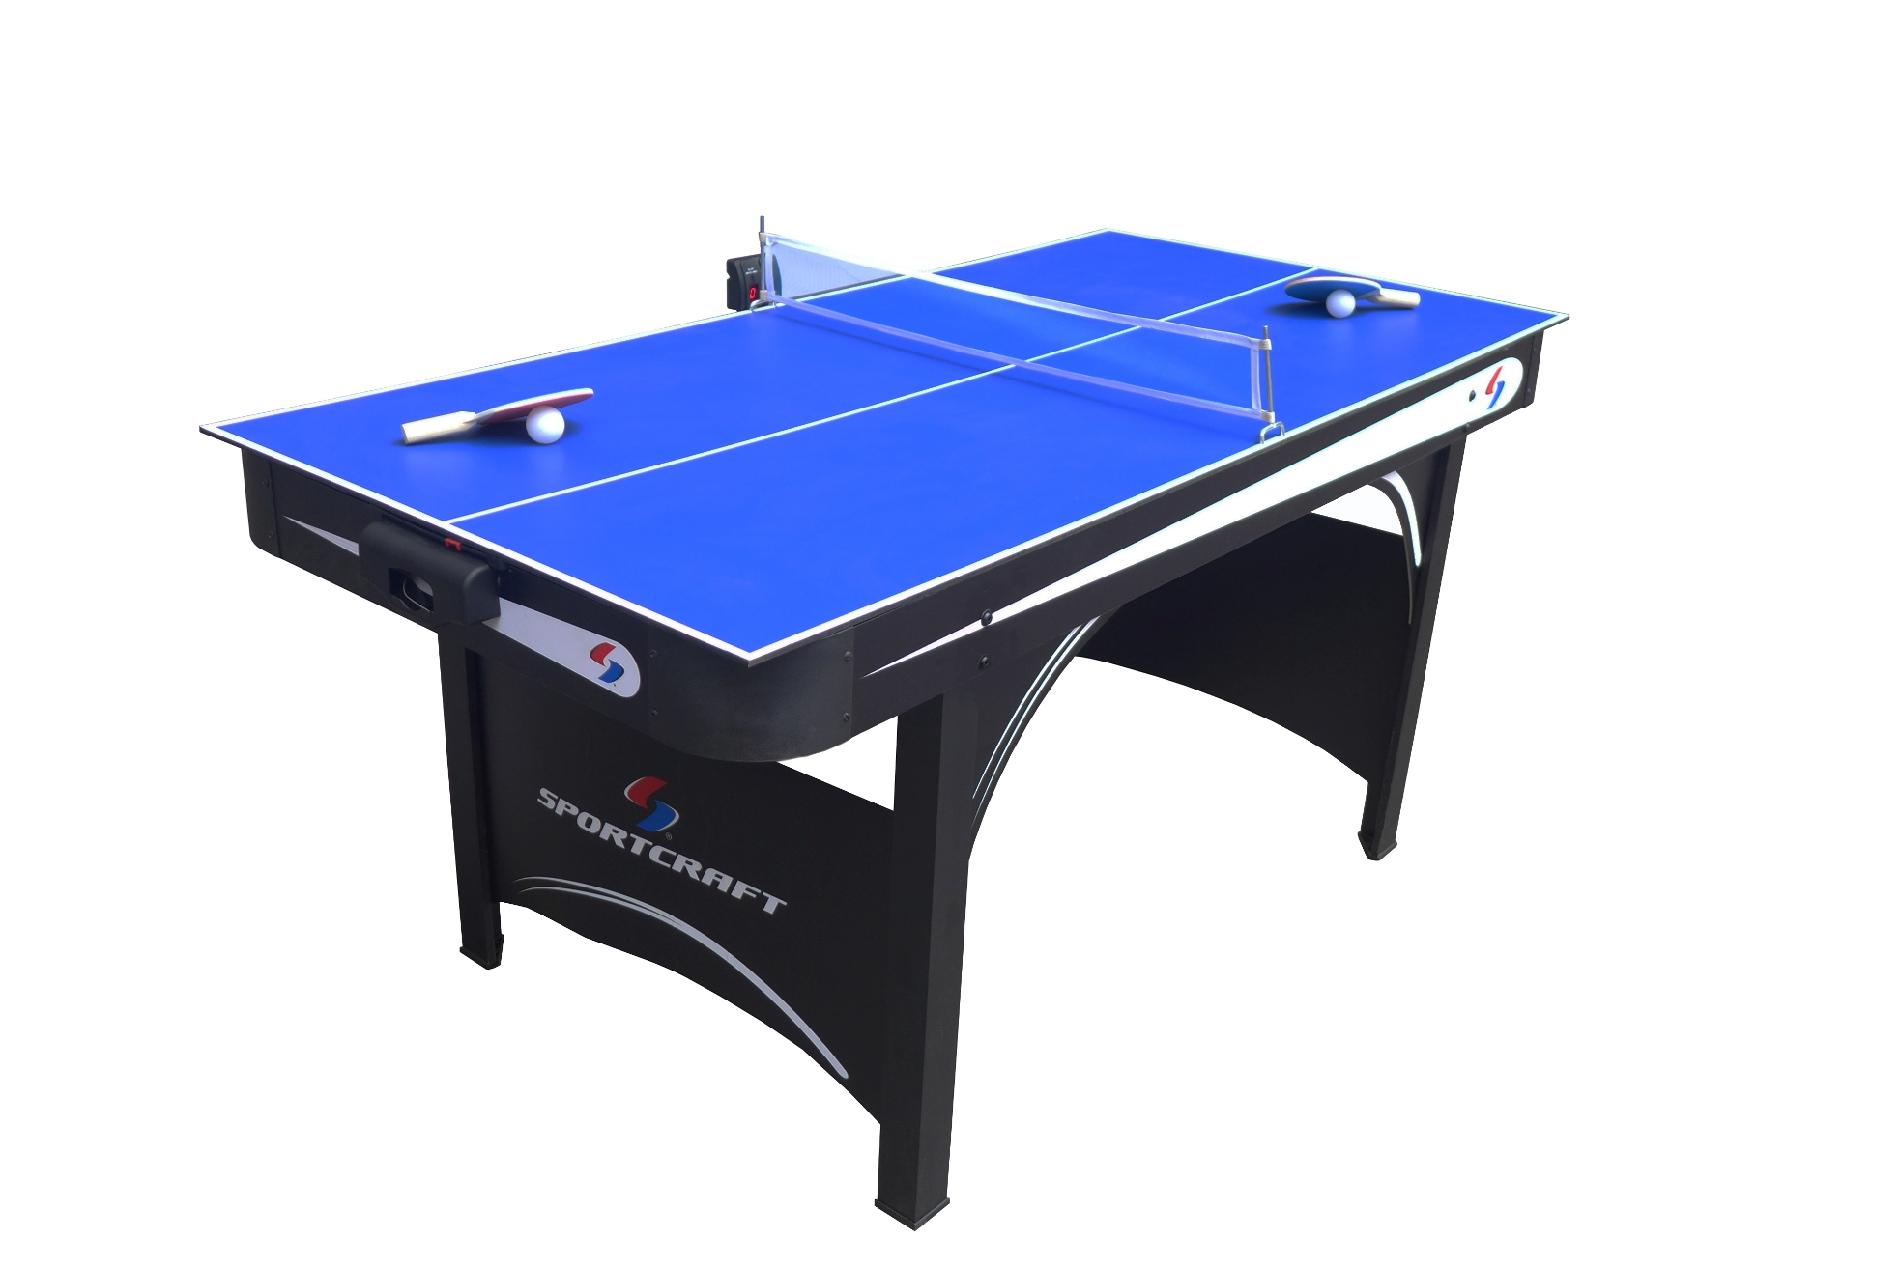 "Sportcraft 66"" Electronic Air Hockey Table with Table Tennis Top"